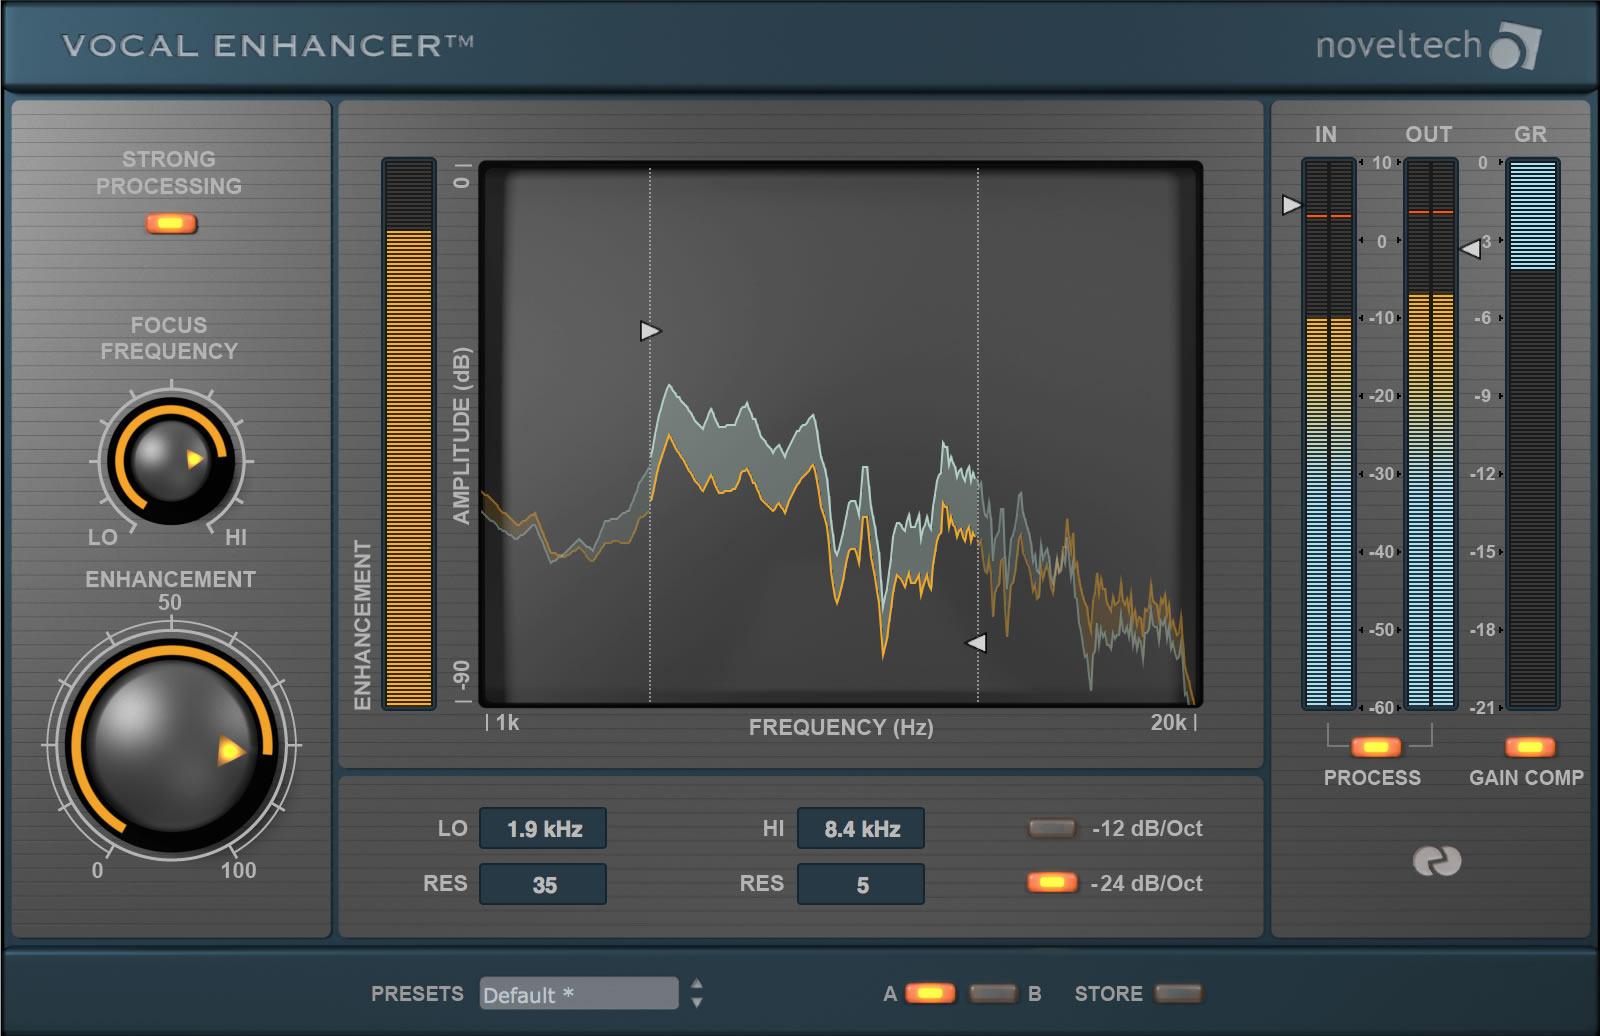 PLUG-IN REVIEW: NOVELTECH VOCAL ENHANCER